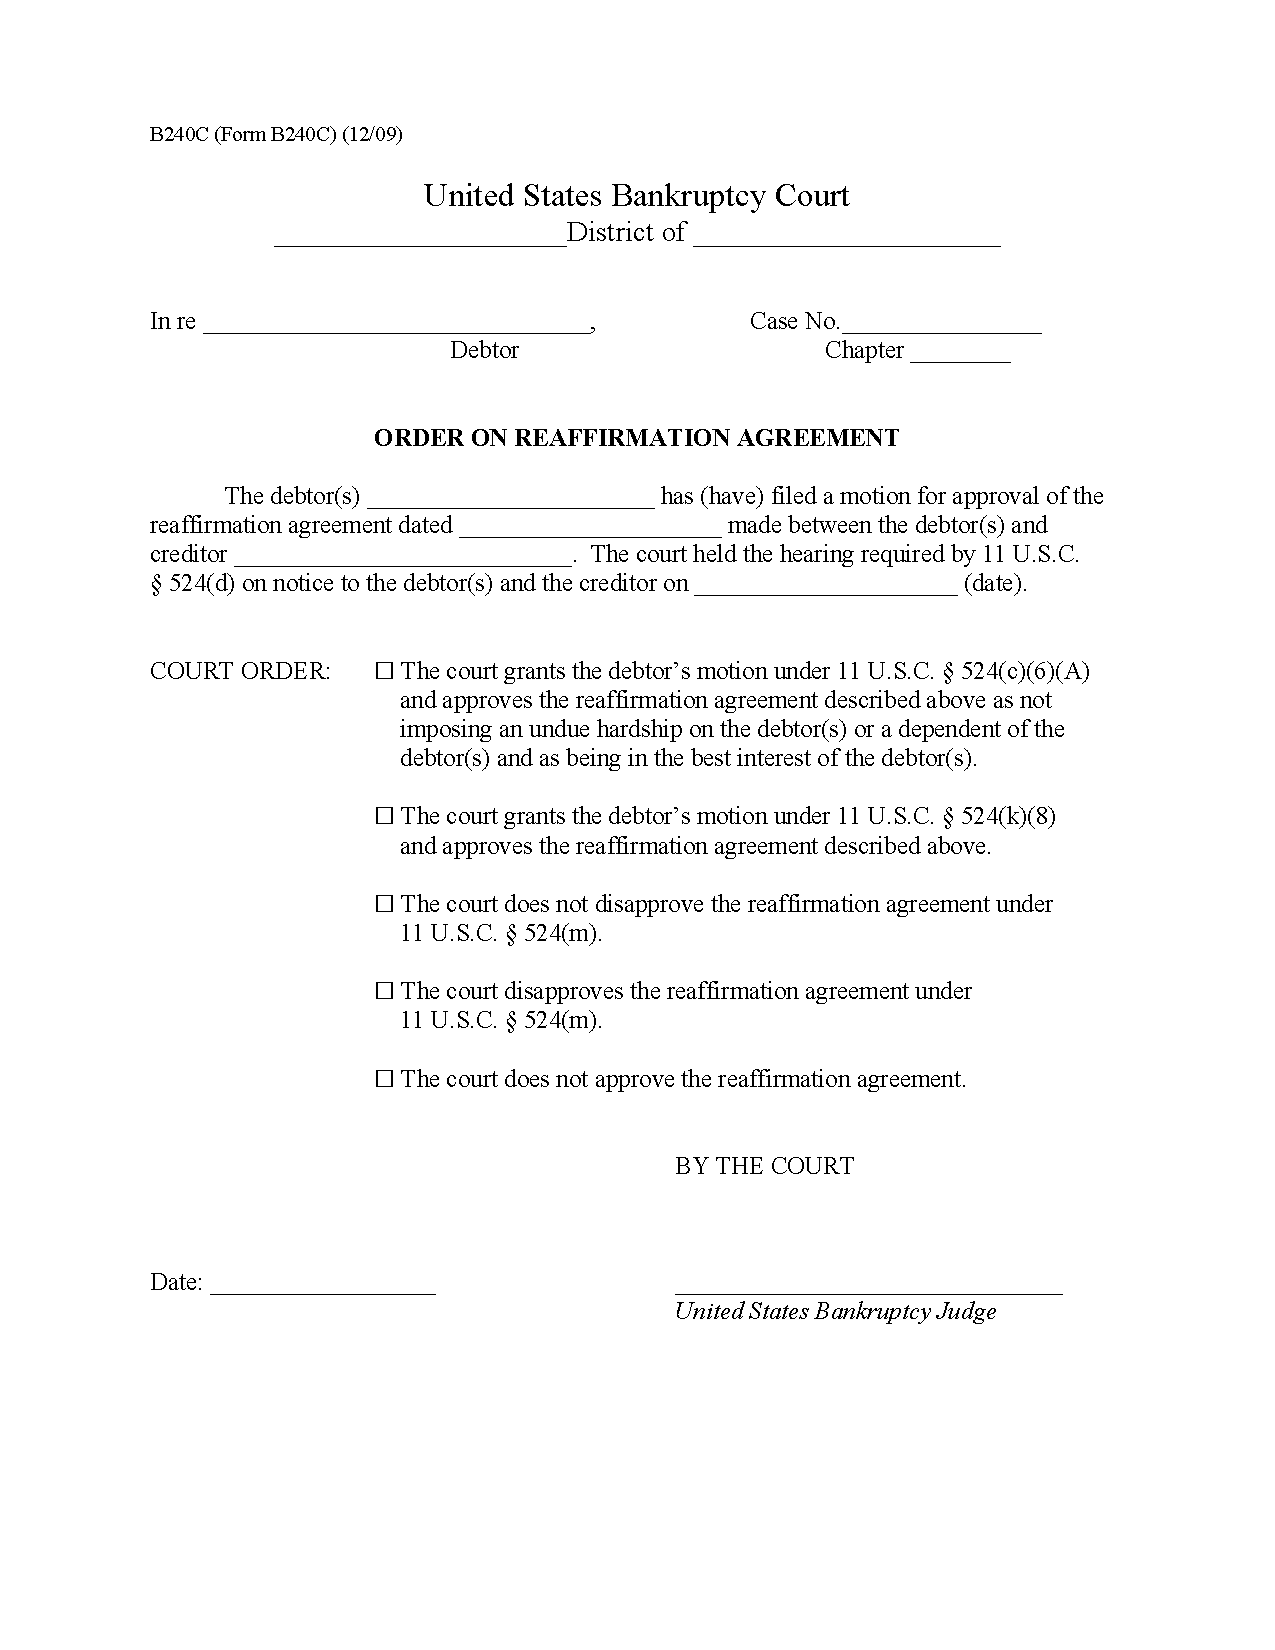 Form B 240c Order On Reaffirmation Agreement 1209